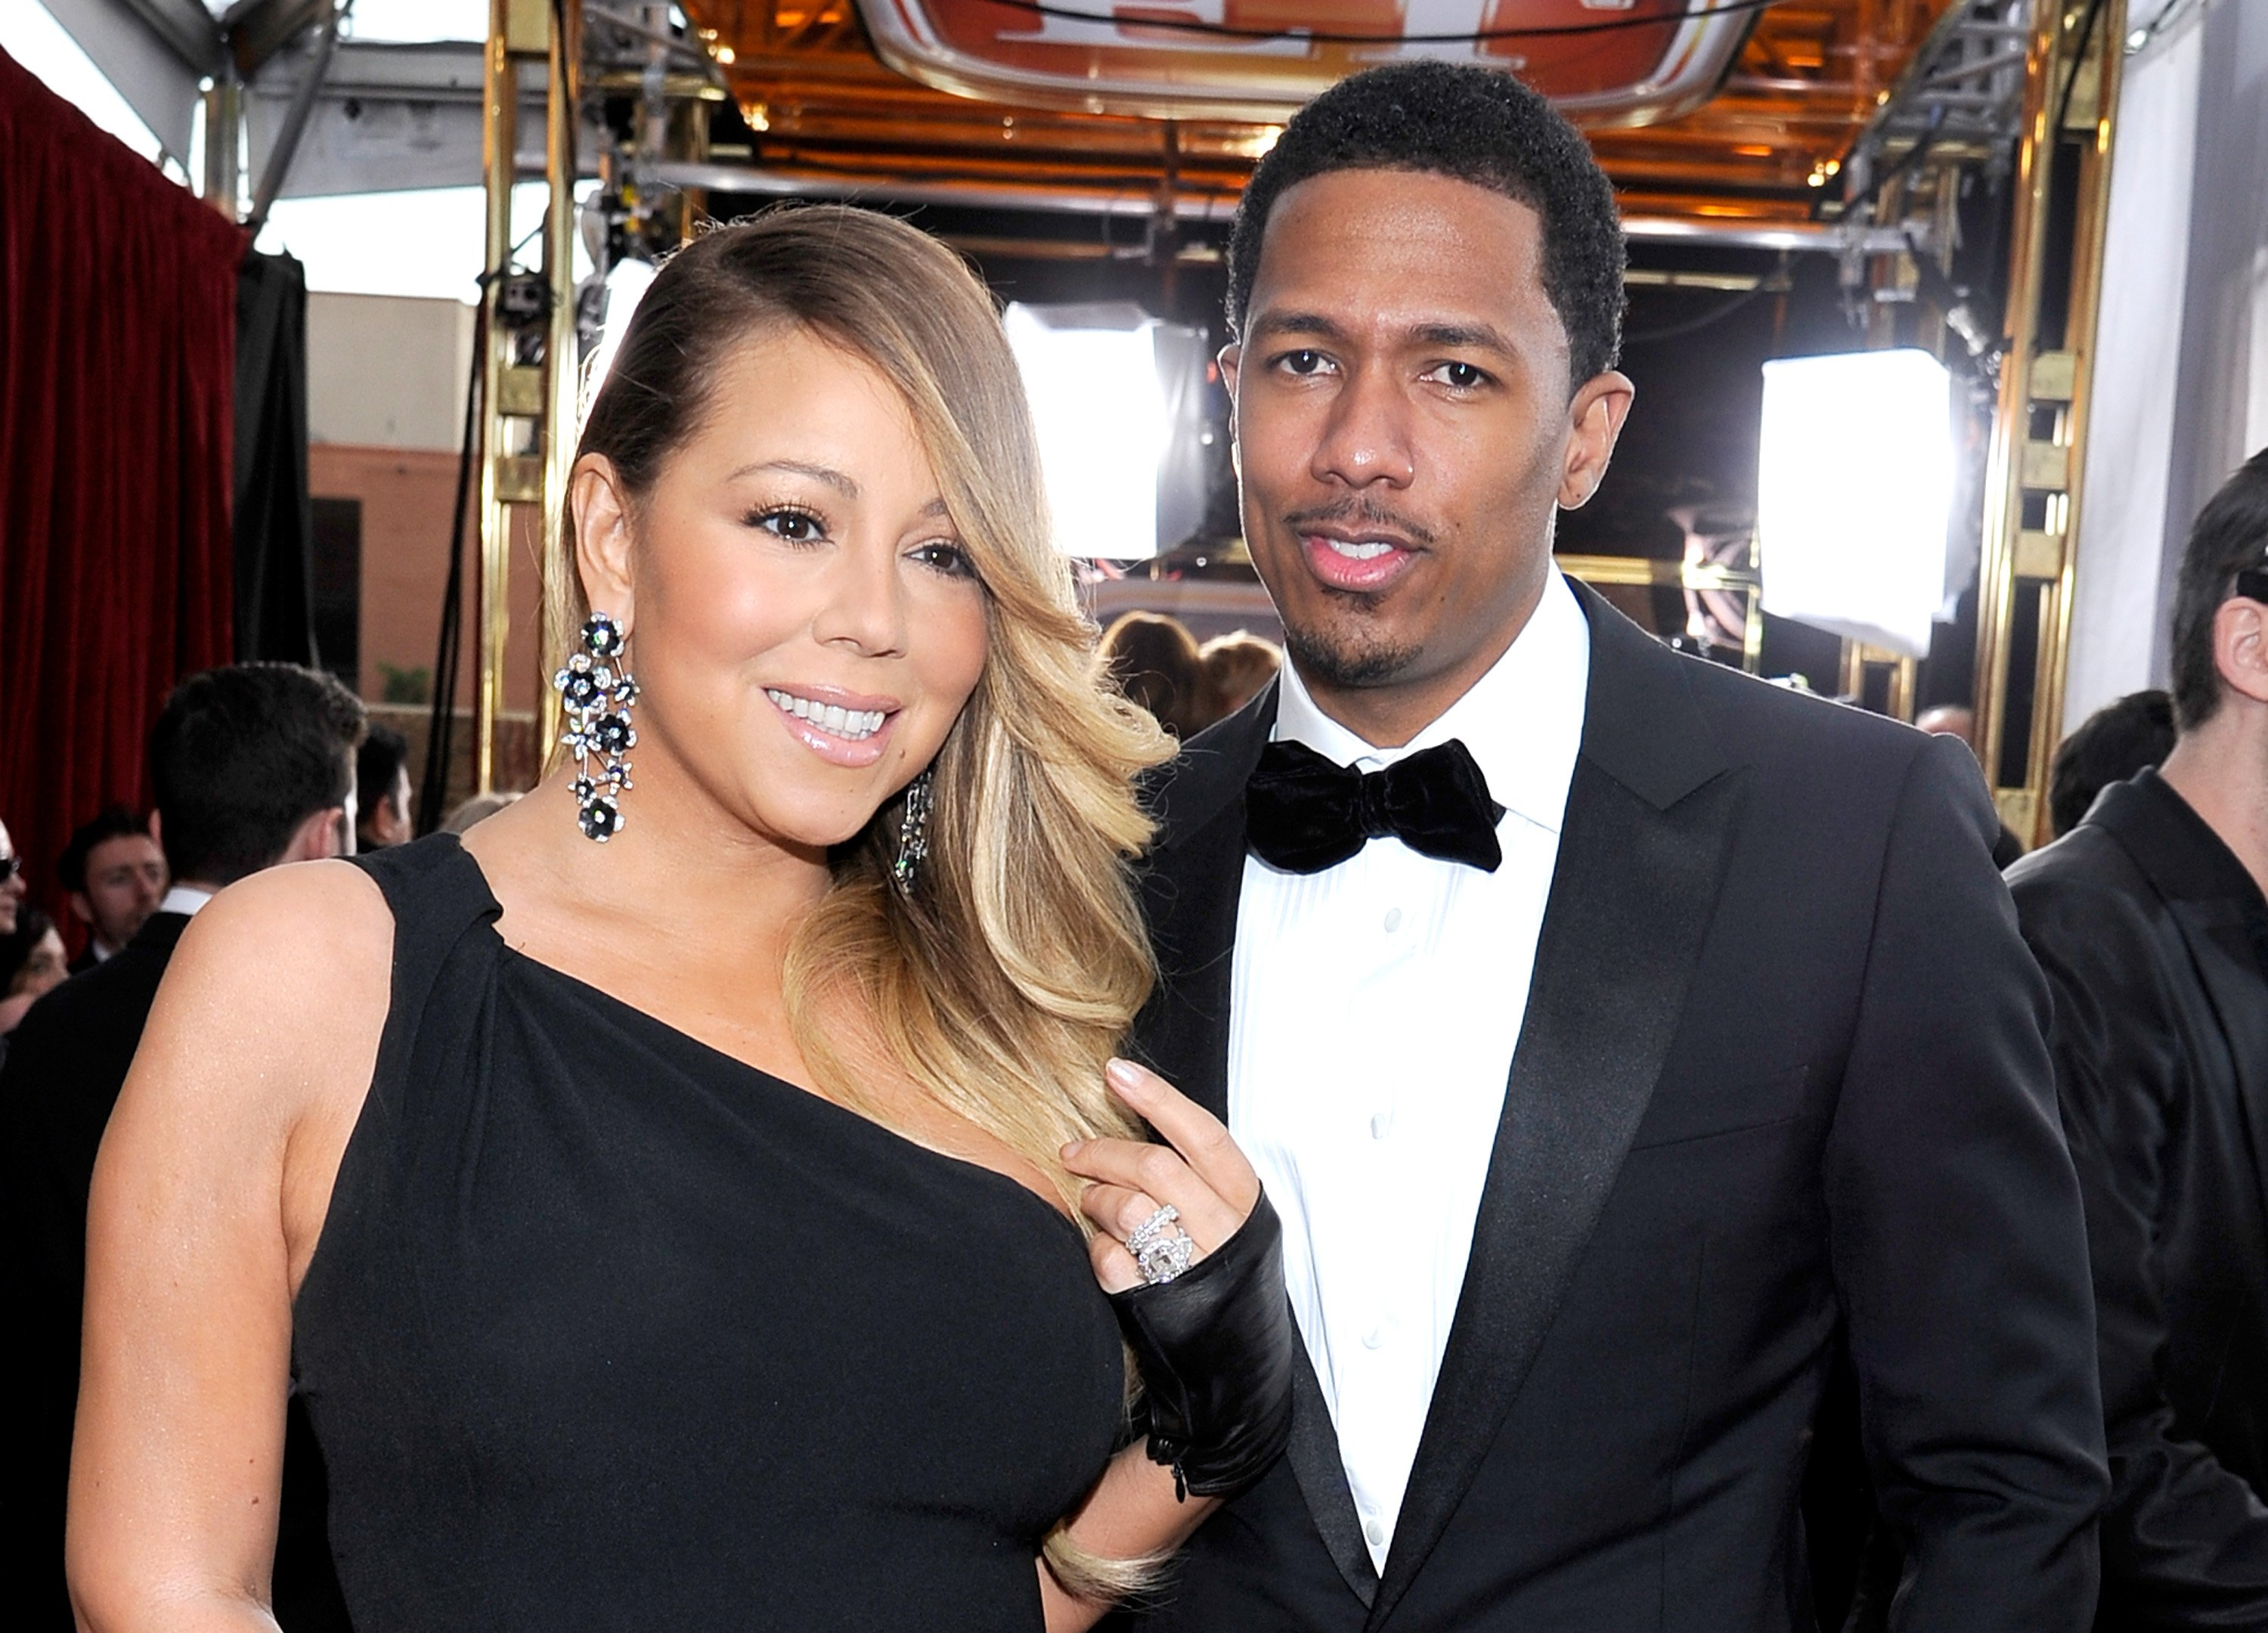 Singer-actress Mariah Carey and TV personality Nick Cannon attend the 20th Annual Screen Actors Guild Awards at The Shrine Auditorium on January 18, 2014, in Los Angeles, California. | Source: Getty Images.